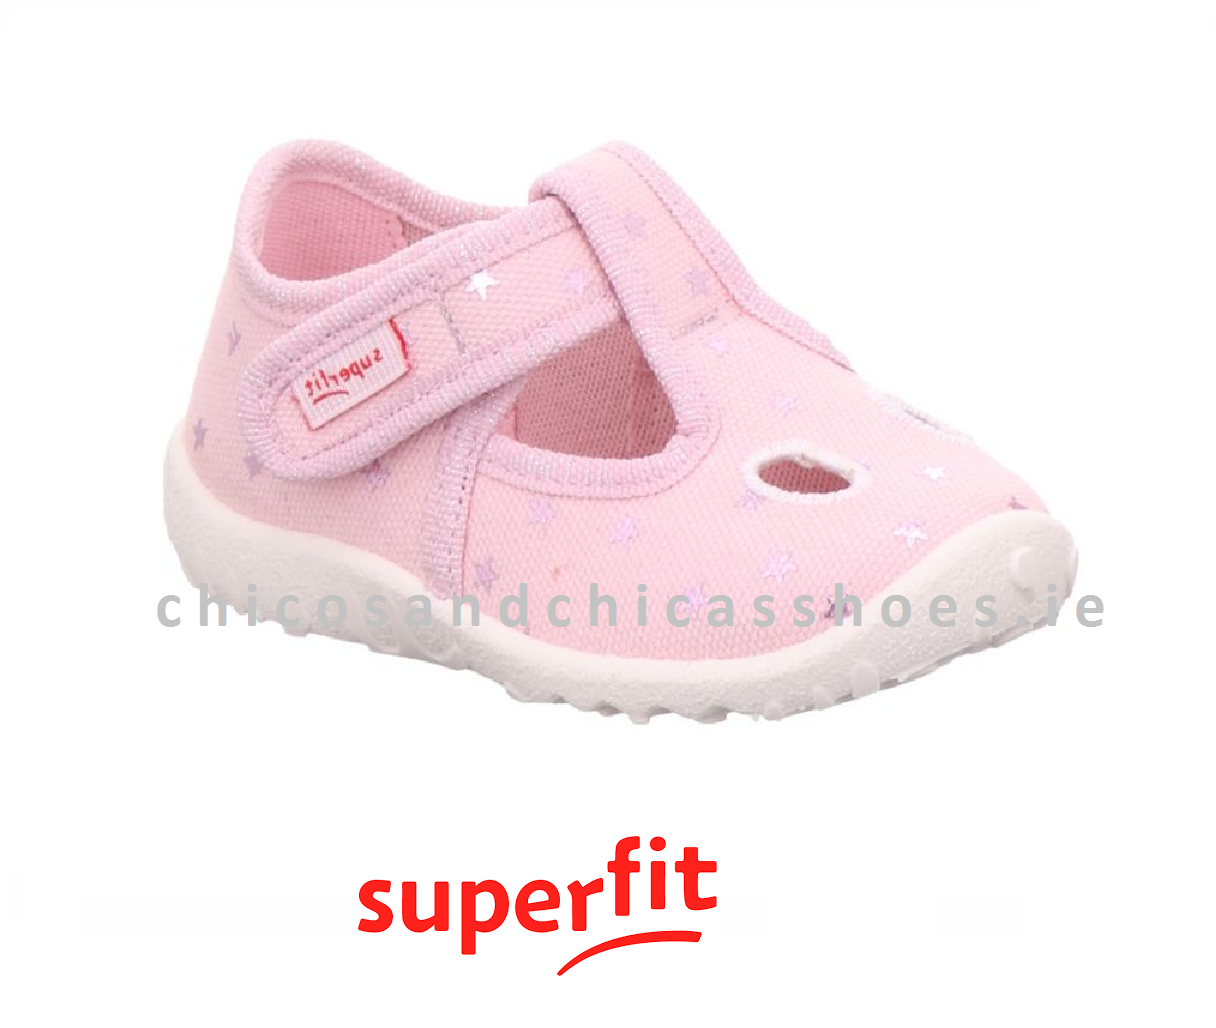 SUPERFIT GIRLS CANVAS-SPOTTY-1/009248/5000-PINK